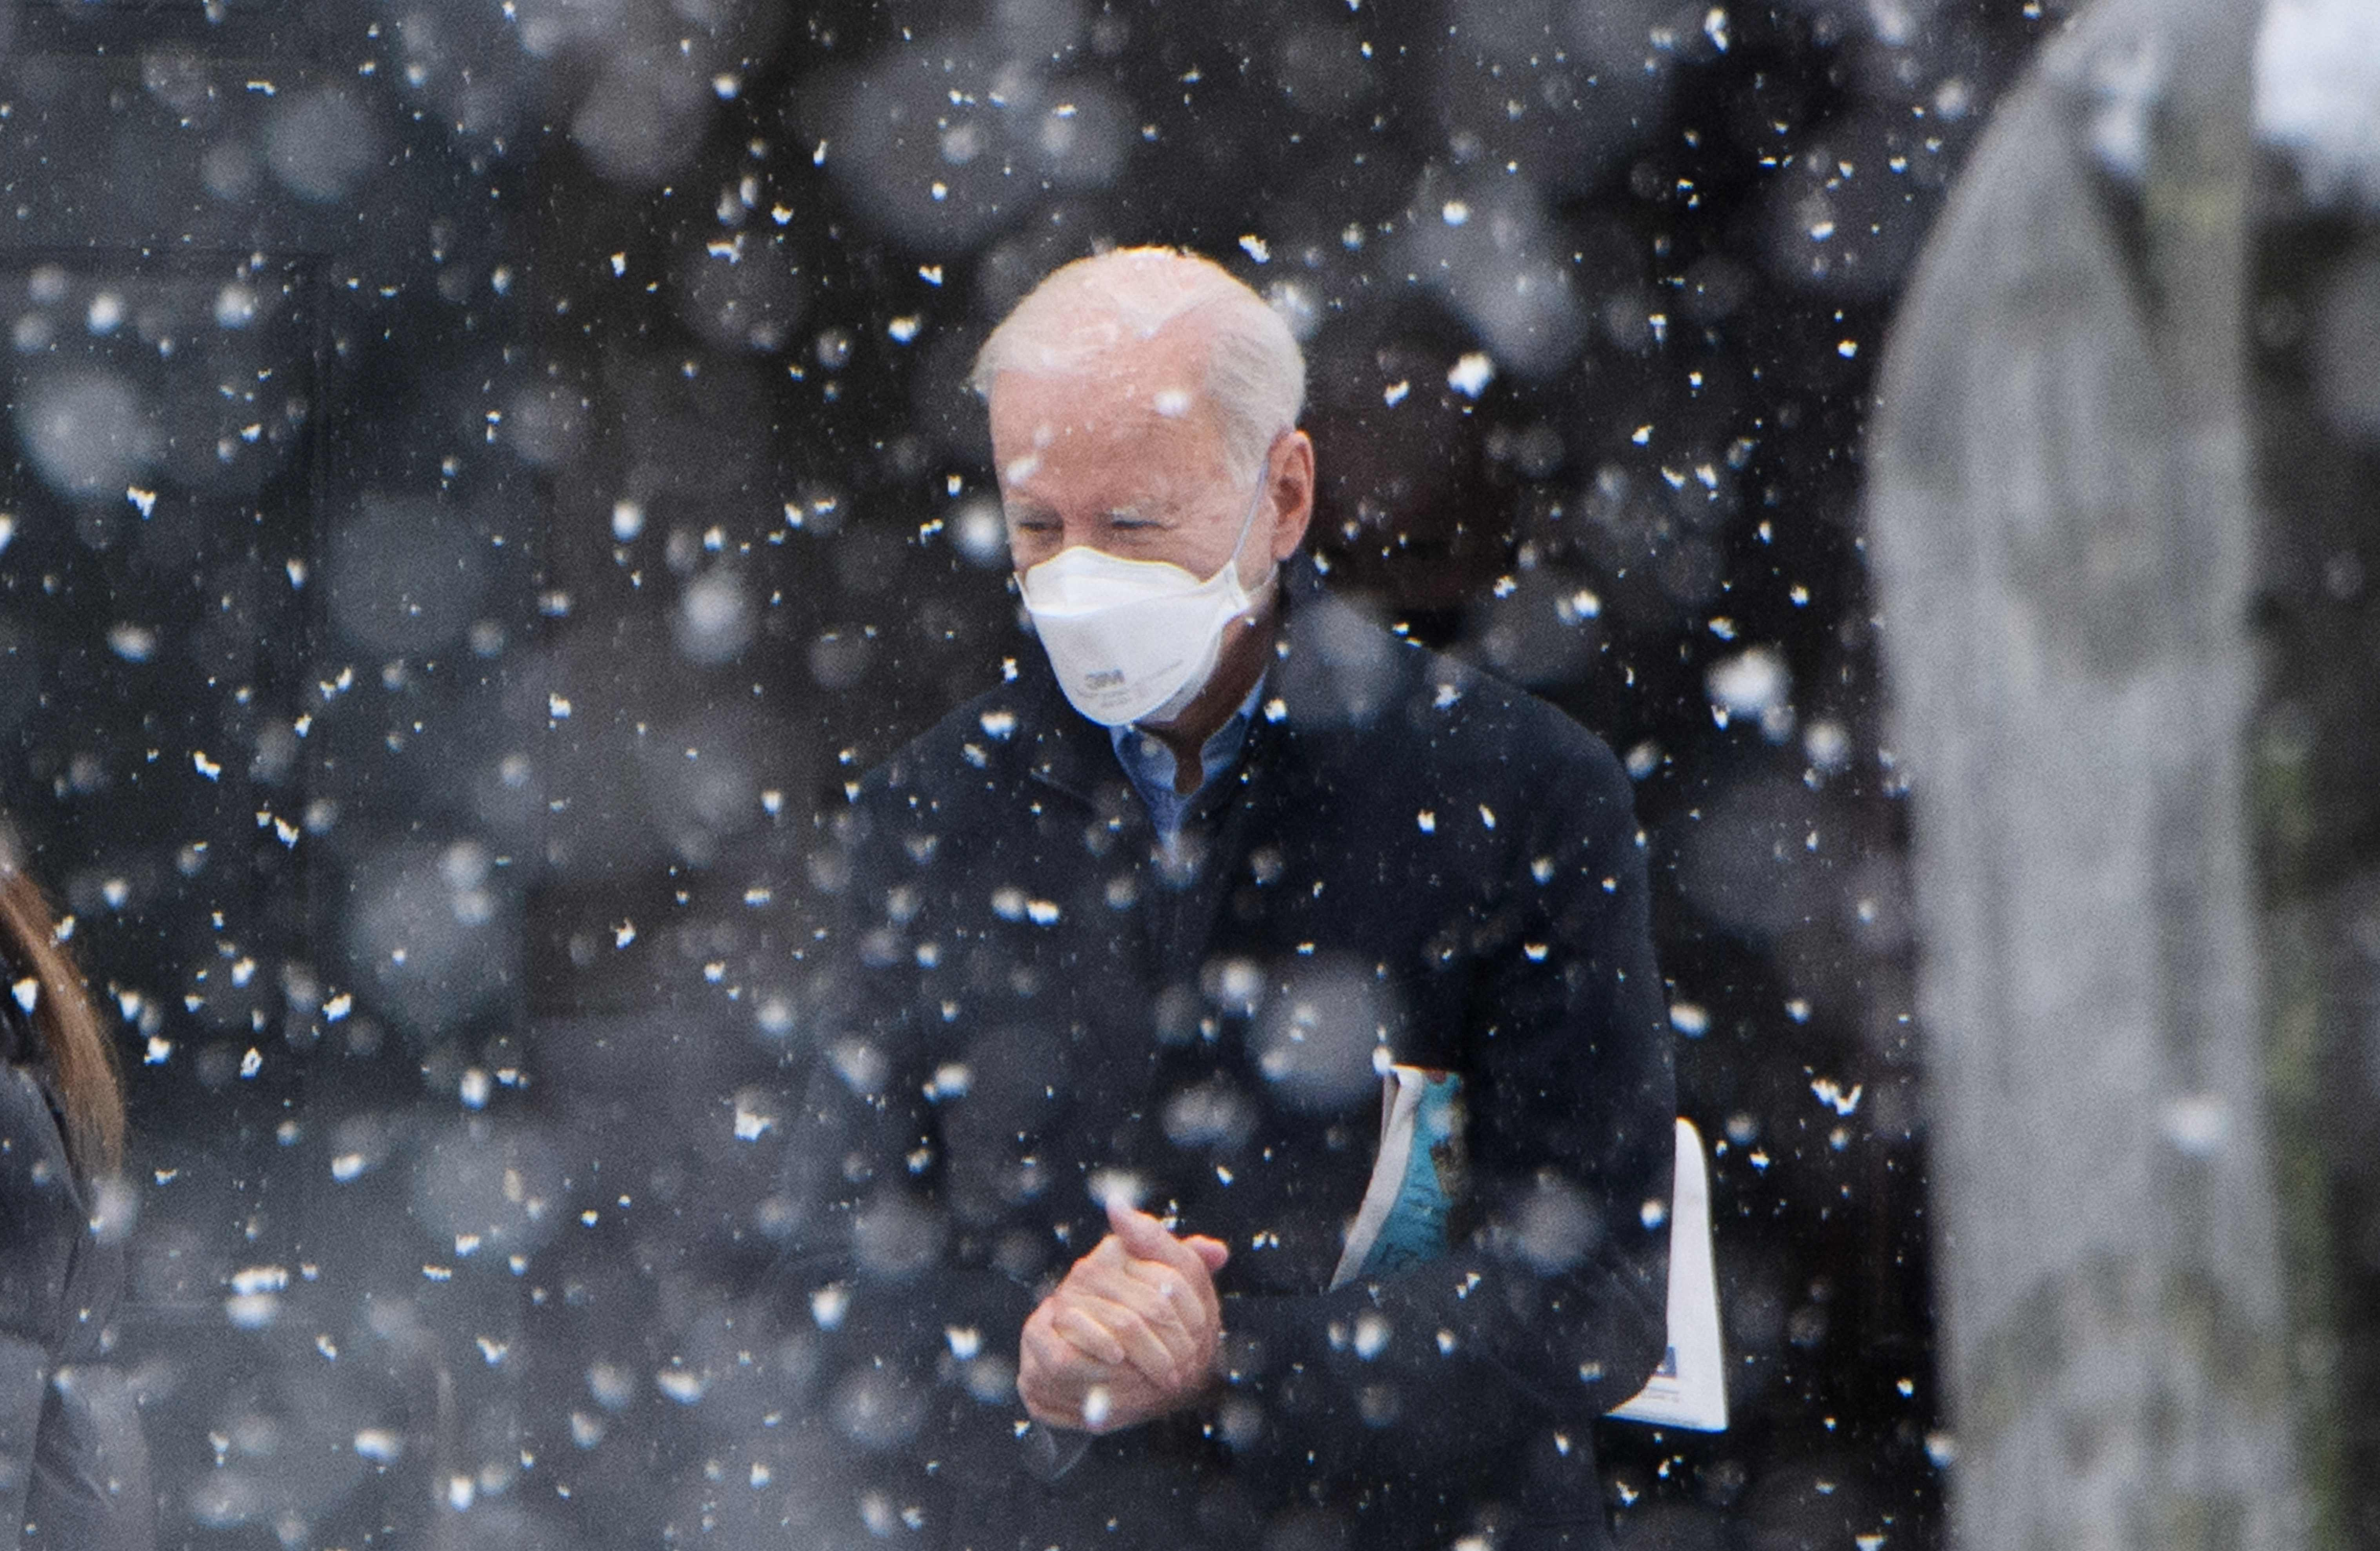 President Biden makes his way to his vehicle in the snow, after attending Mass at Saint Joseph on the Brandywine Church in Wilmington, Delaware on Febr. 7, 2021. (Mandel Ngan/AFP/Getty Images)